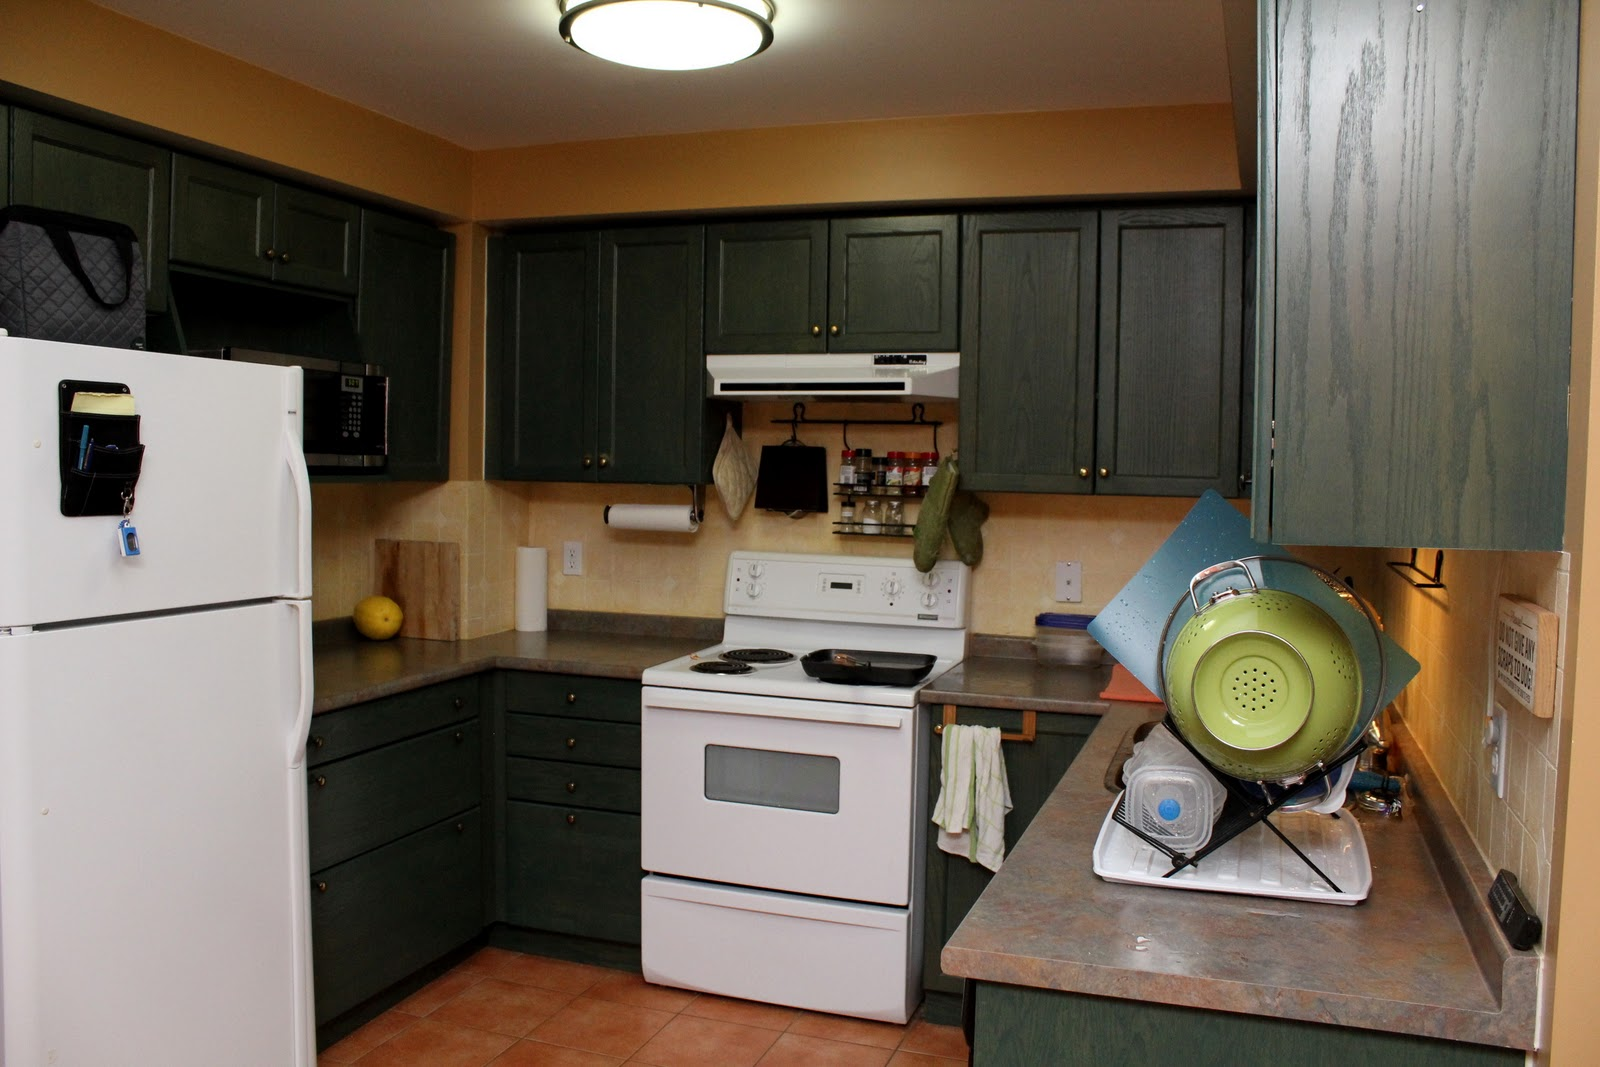 Brown painted kitchen cabinets -  Brown Painted Kitchen Cabinets With White Appliances 2